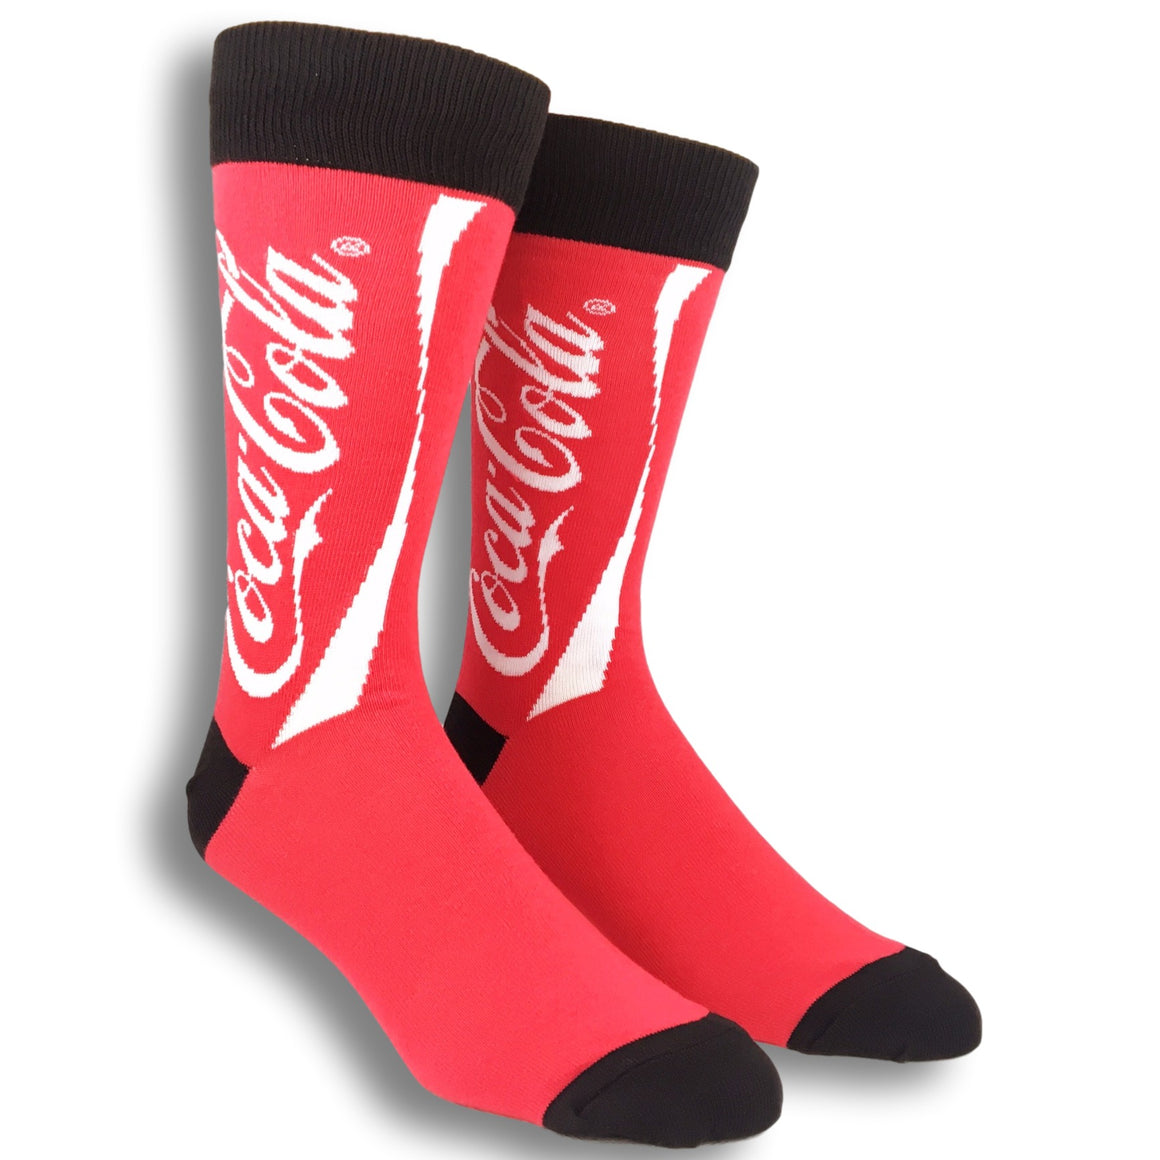 Coca-Cola Socks by SockSmith - The Sock Spot